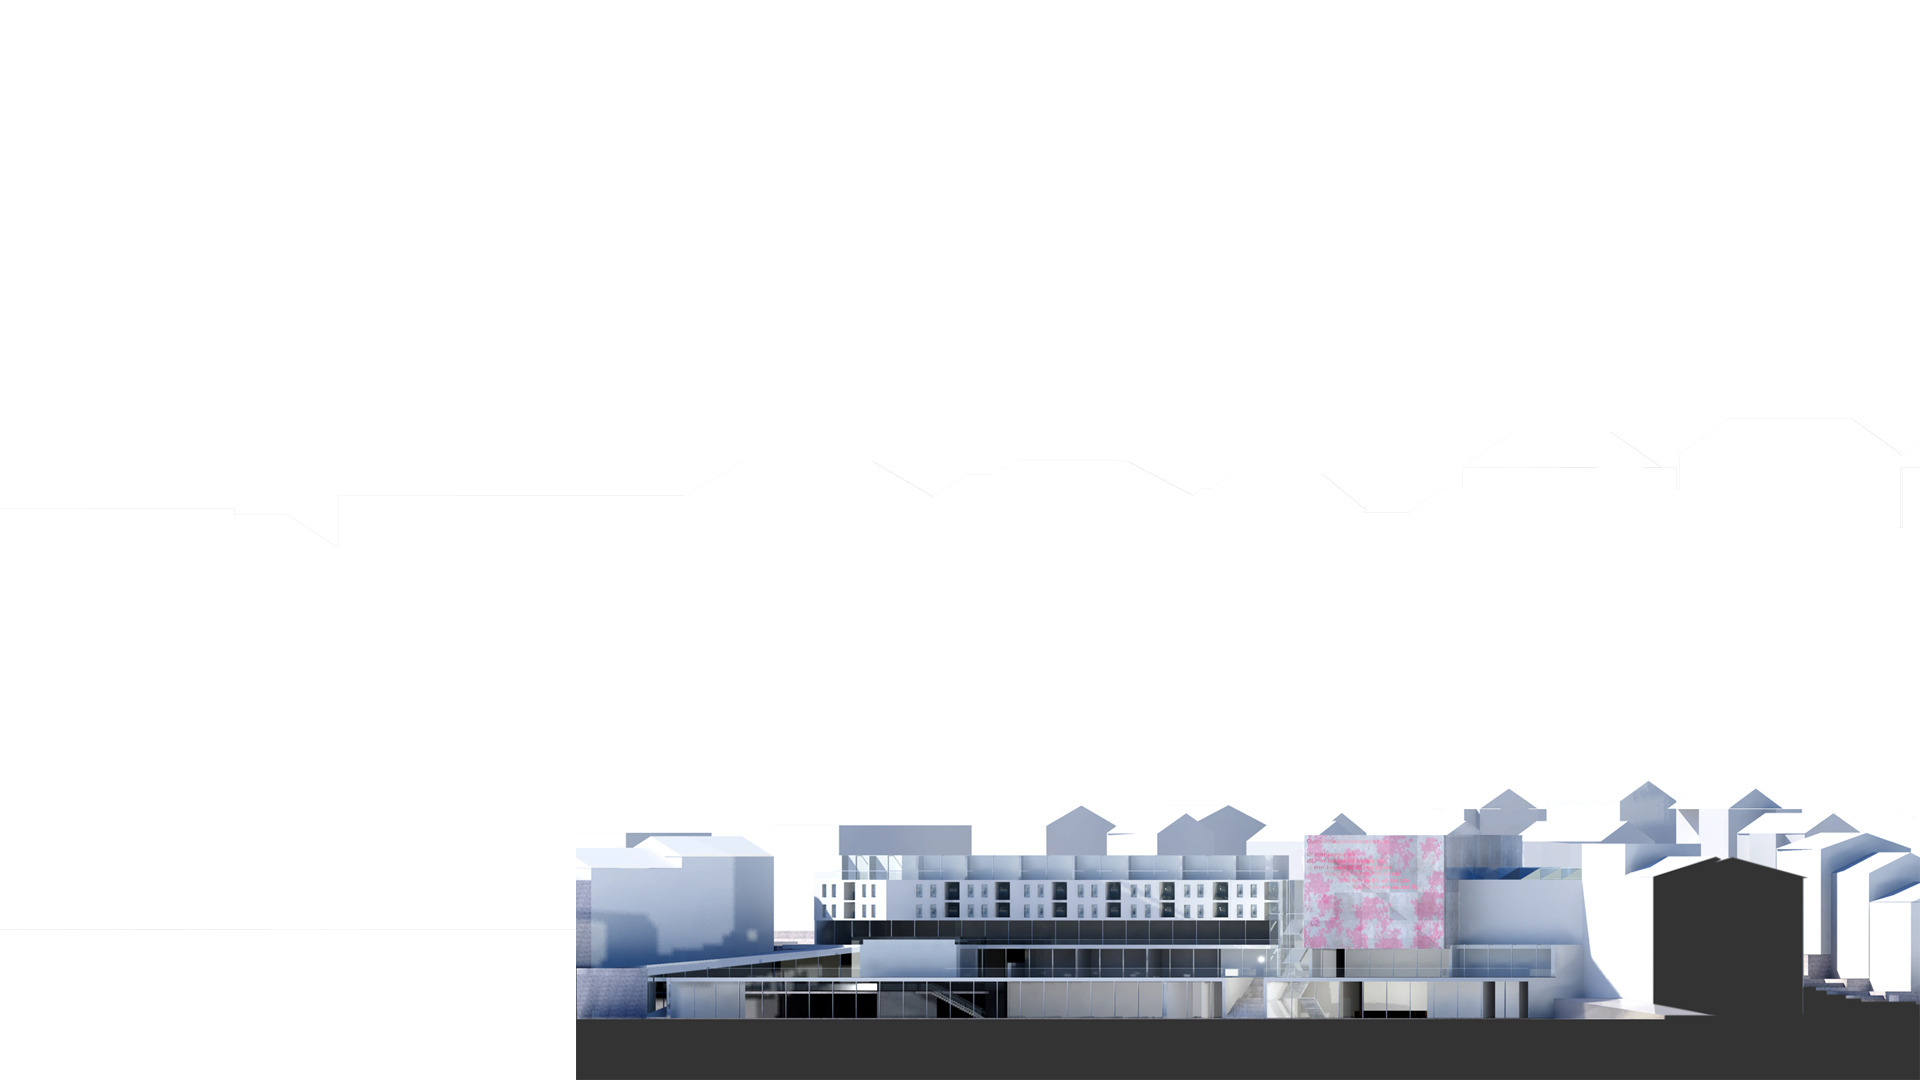 Context section of showing the new Molde Theatre & Jazzhouse inserted into the townscape